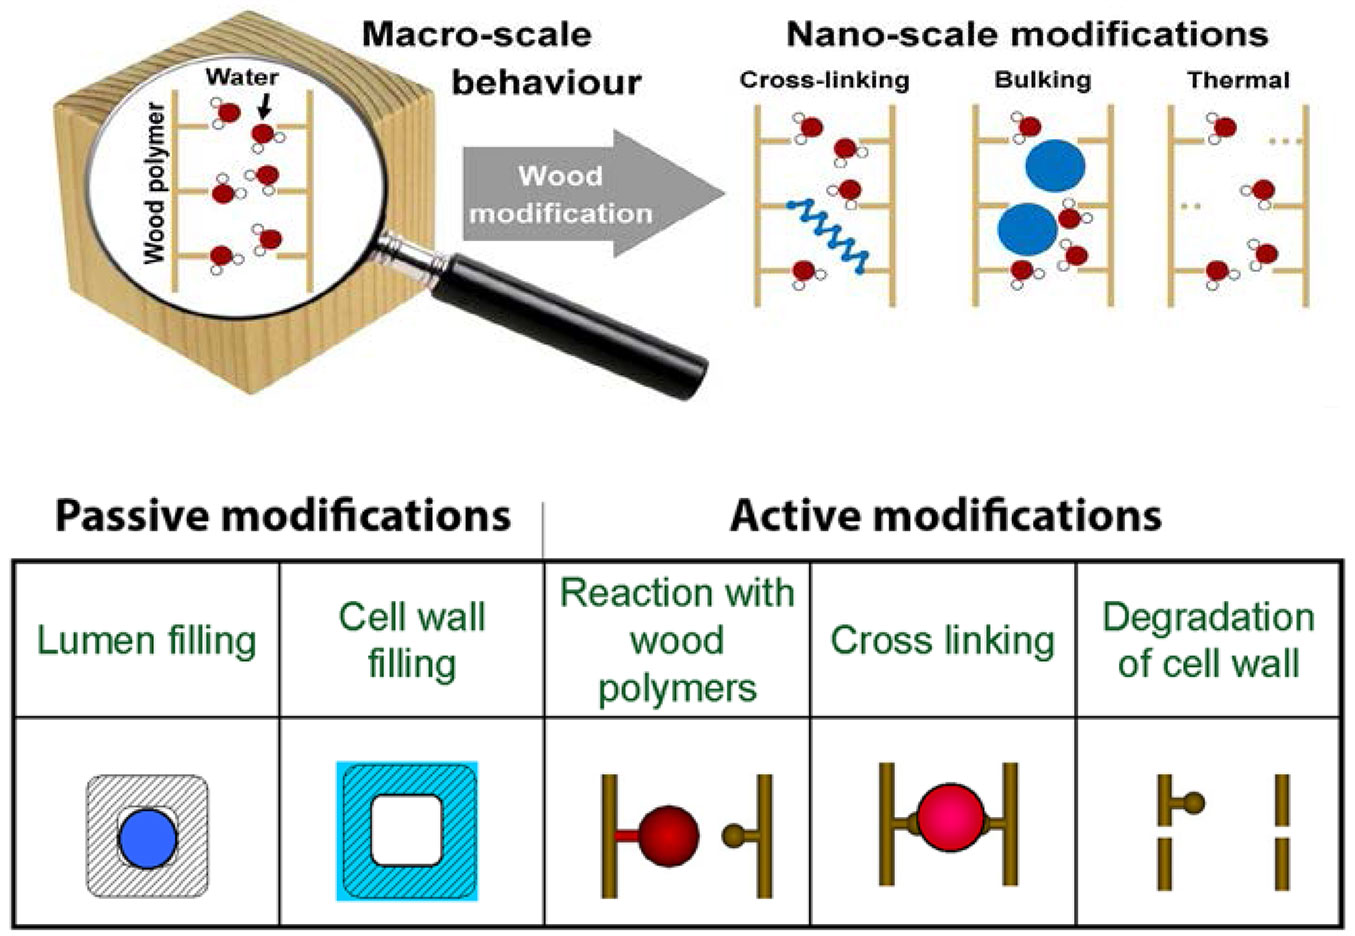 Sandberg D, Kutnar A, Mantanis G (2017). Wood modification technologies - a  review. iForest - Biogeosciences and Forestry 10: 895-908.